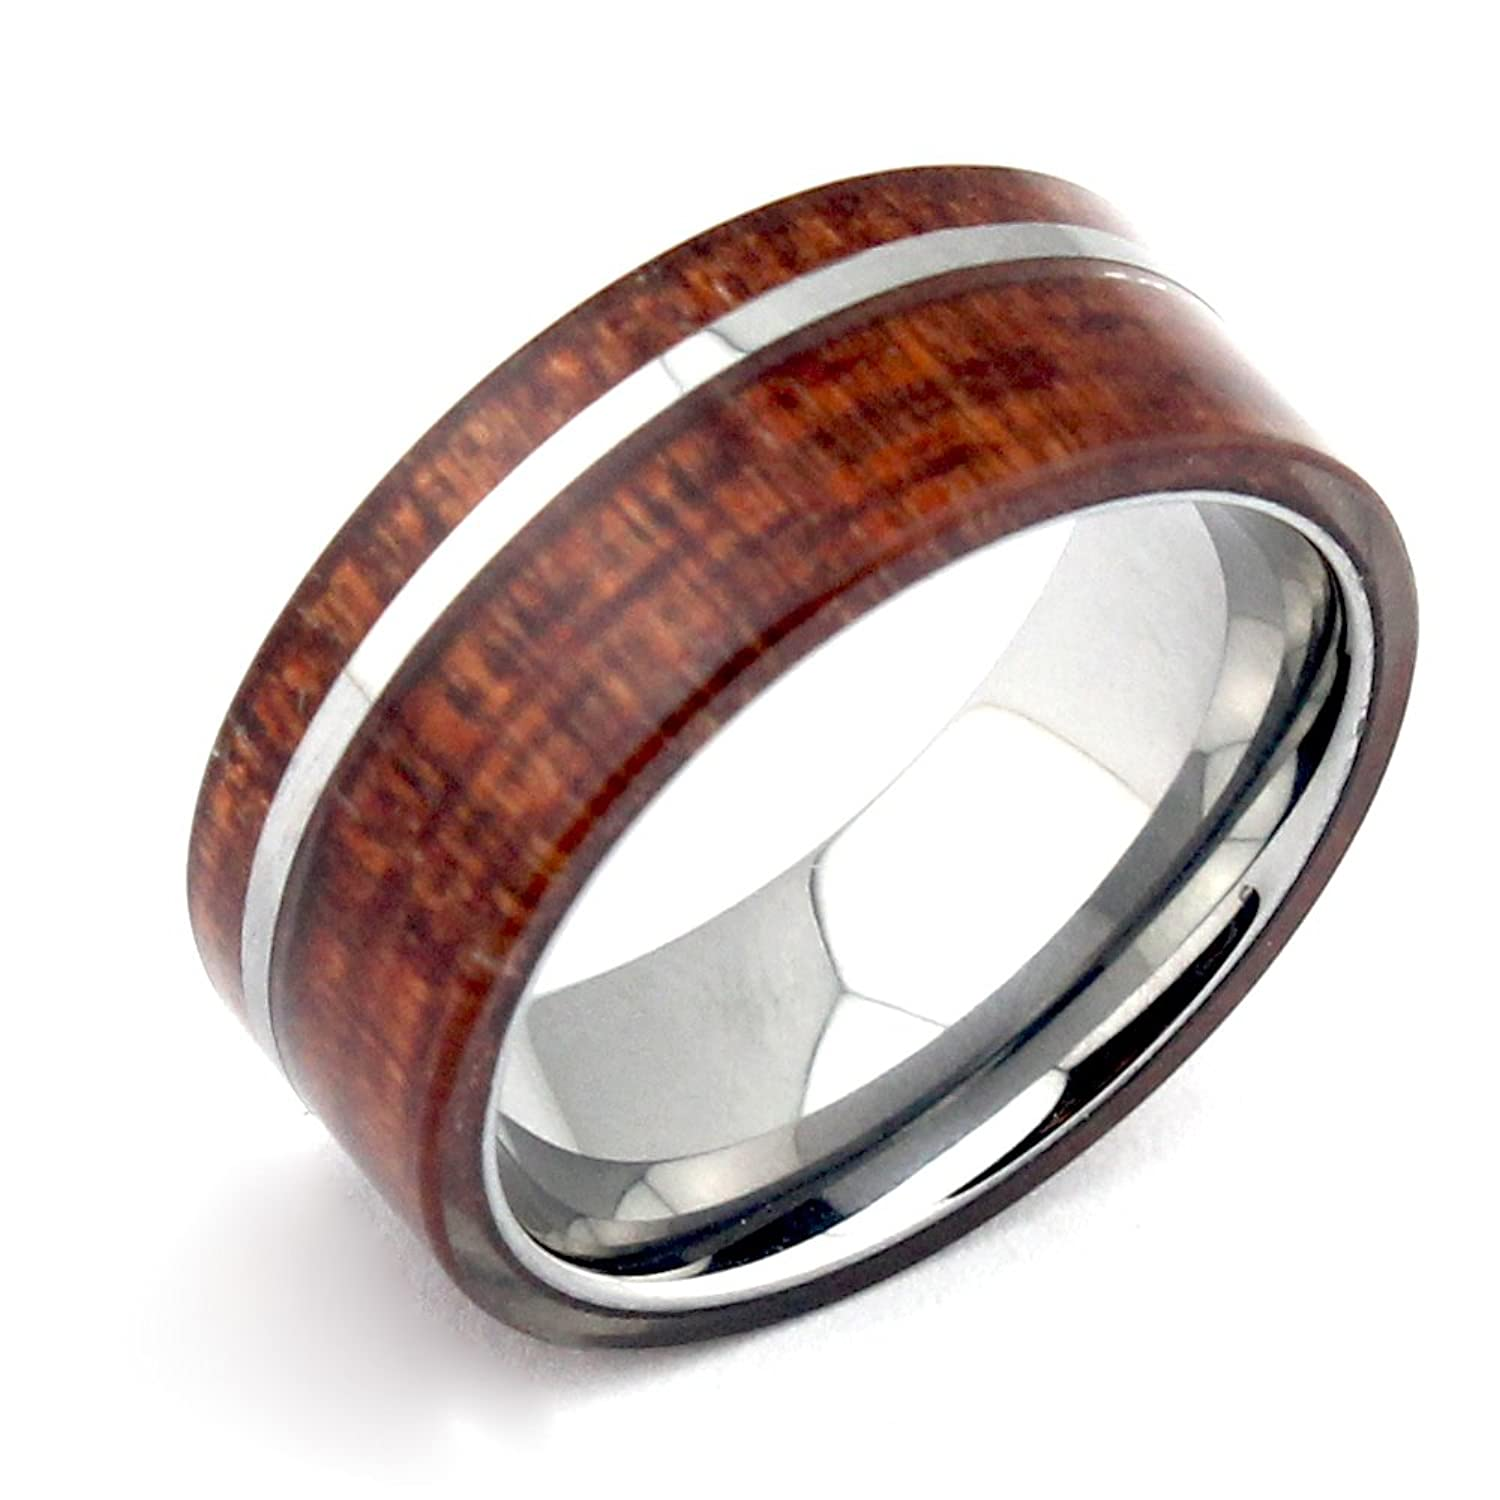 Will Queen Hawaii Koa Wood Inlay Men's Tungsten Wedding Bands with ...